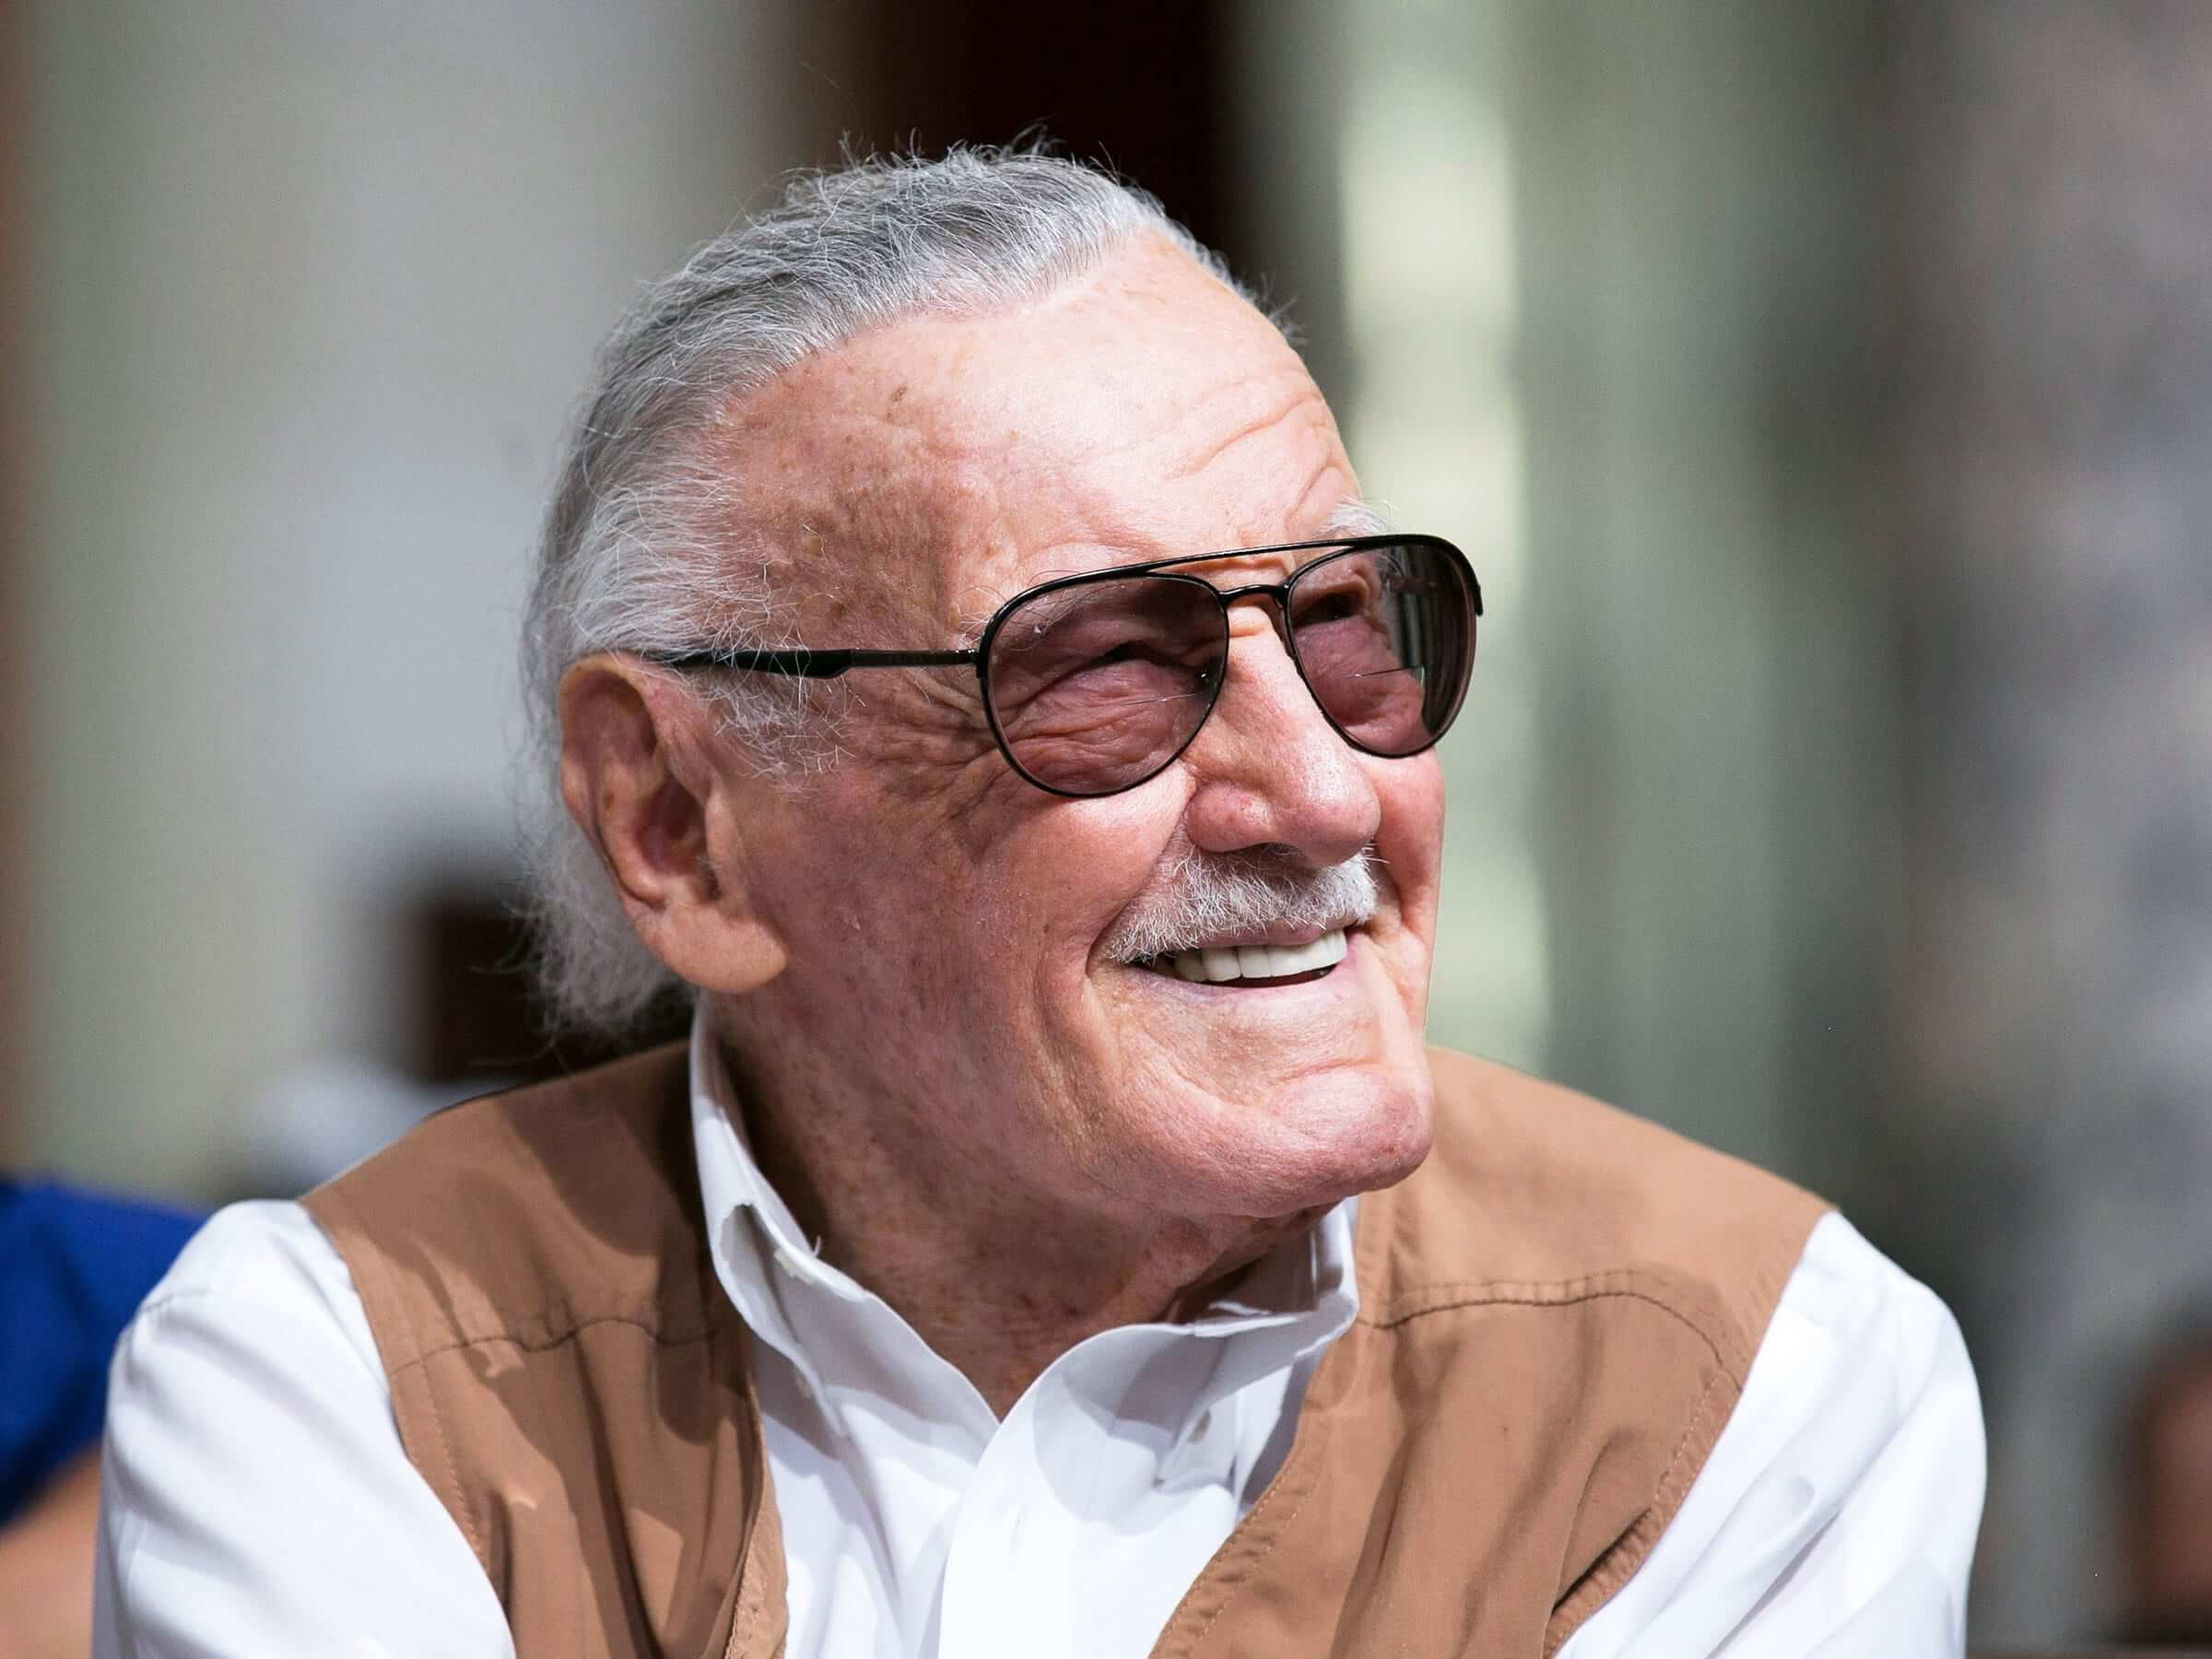 STAN LEE CAMEOS: OUR MOST MEMORABLE MARVEL MOMENTS